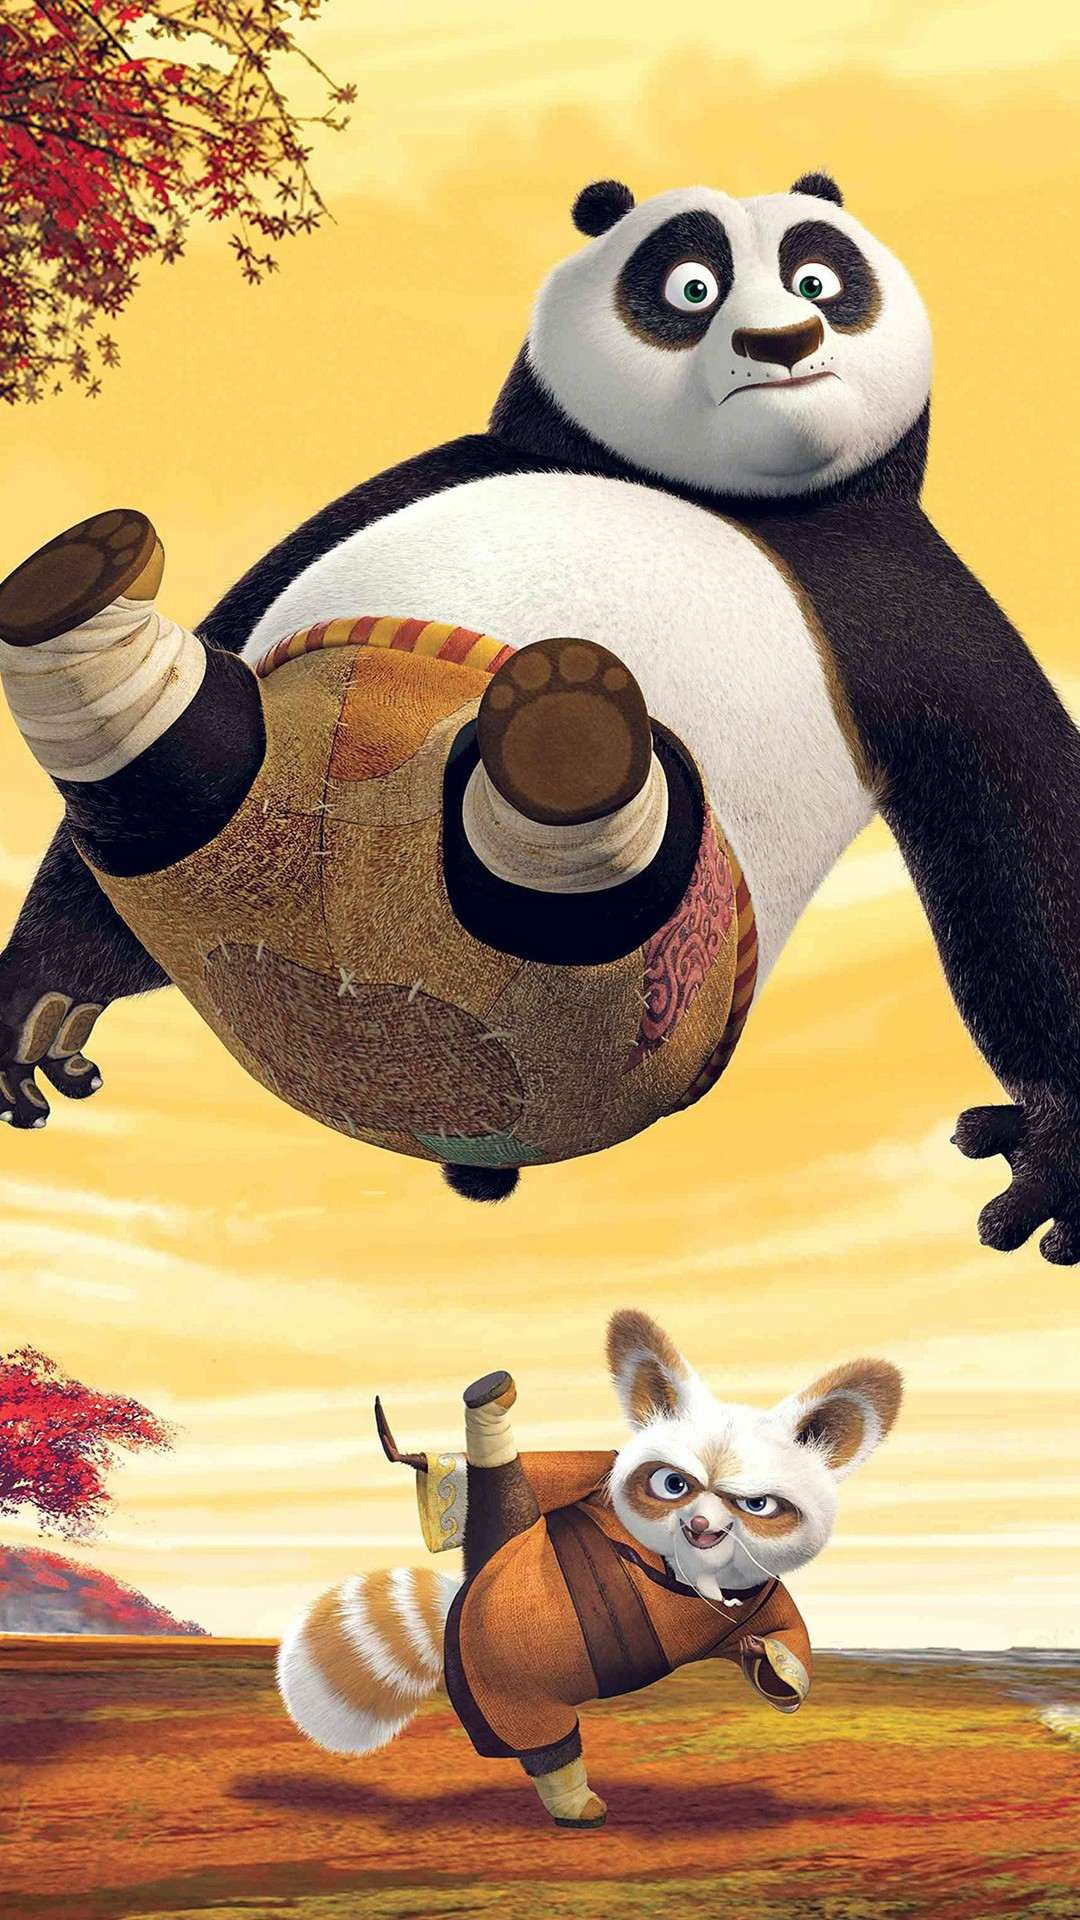 1080x1920 Kungfu Panda Dreamworks Art Kick Cute Anime #iPhone #6 #plus #wallpaper